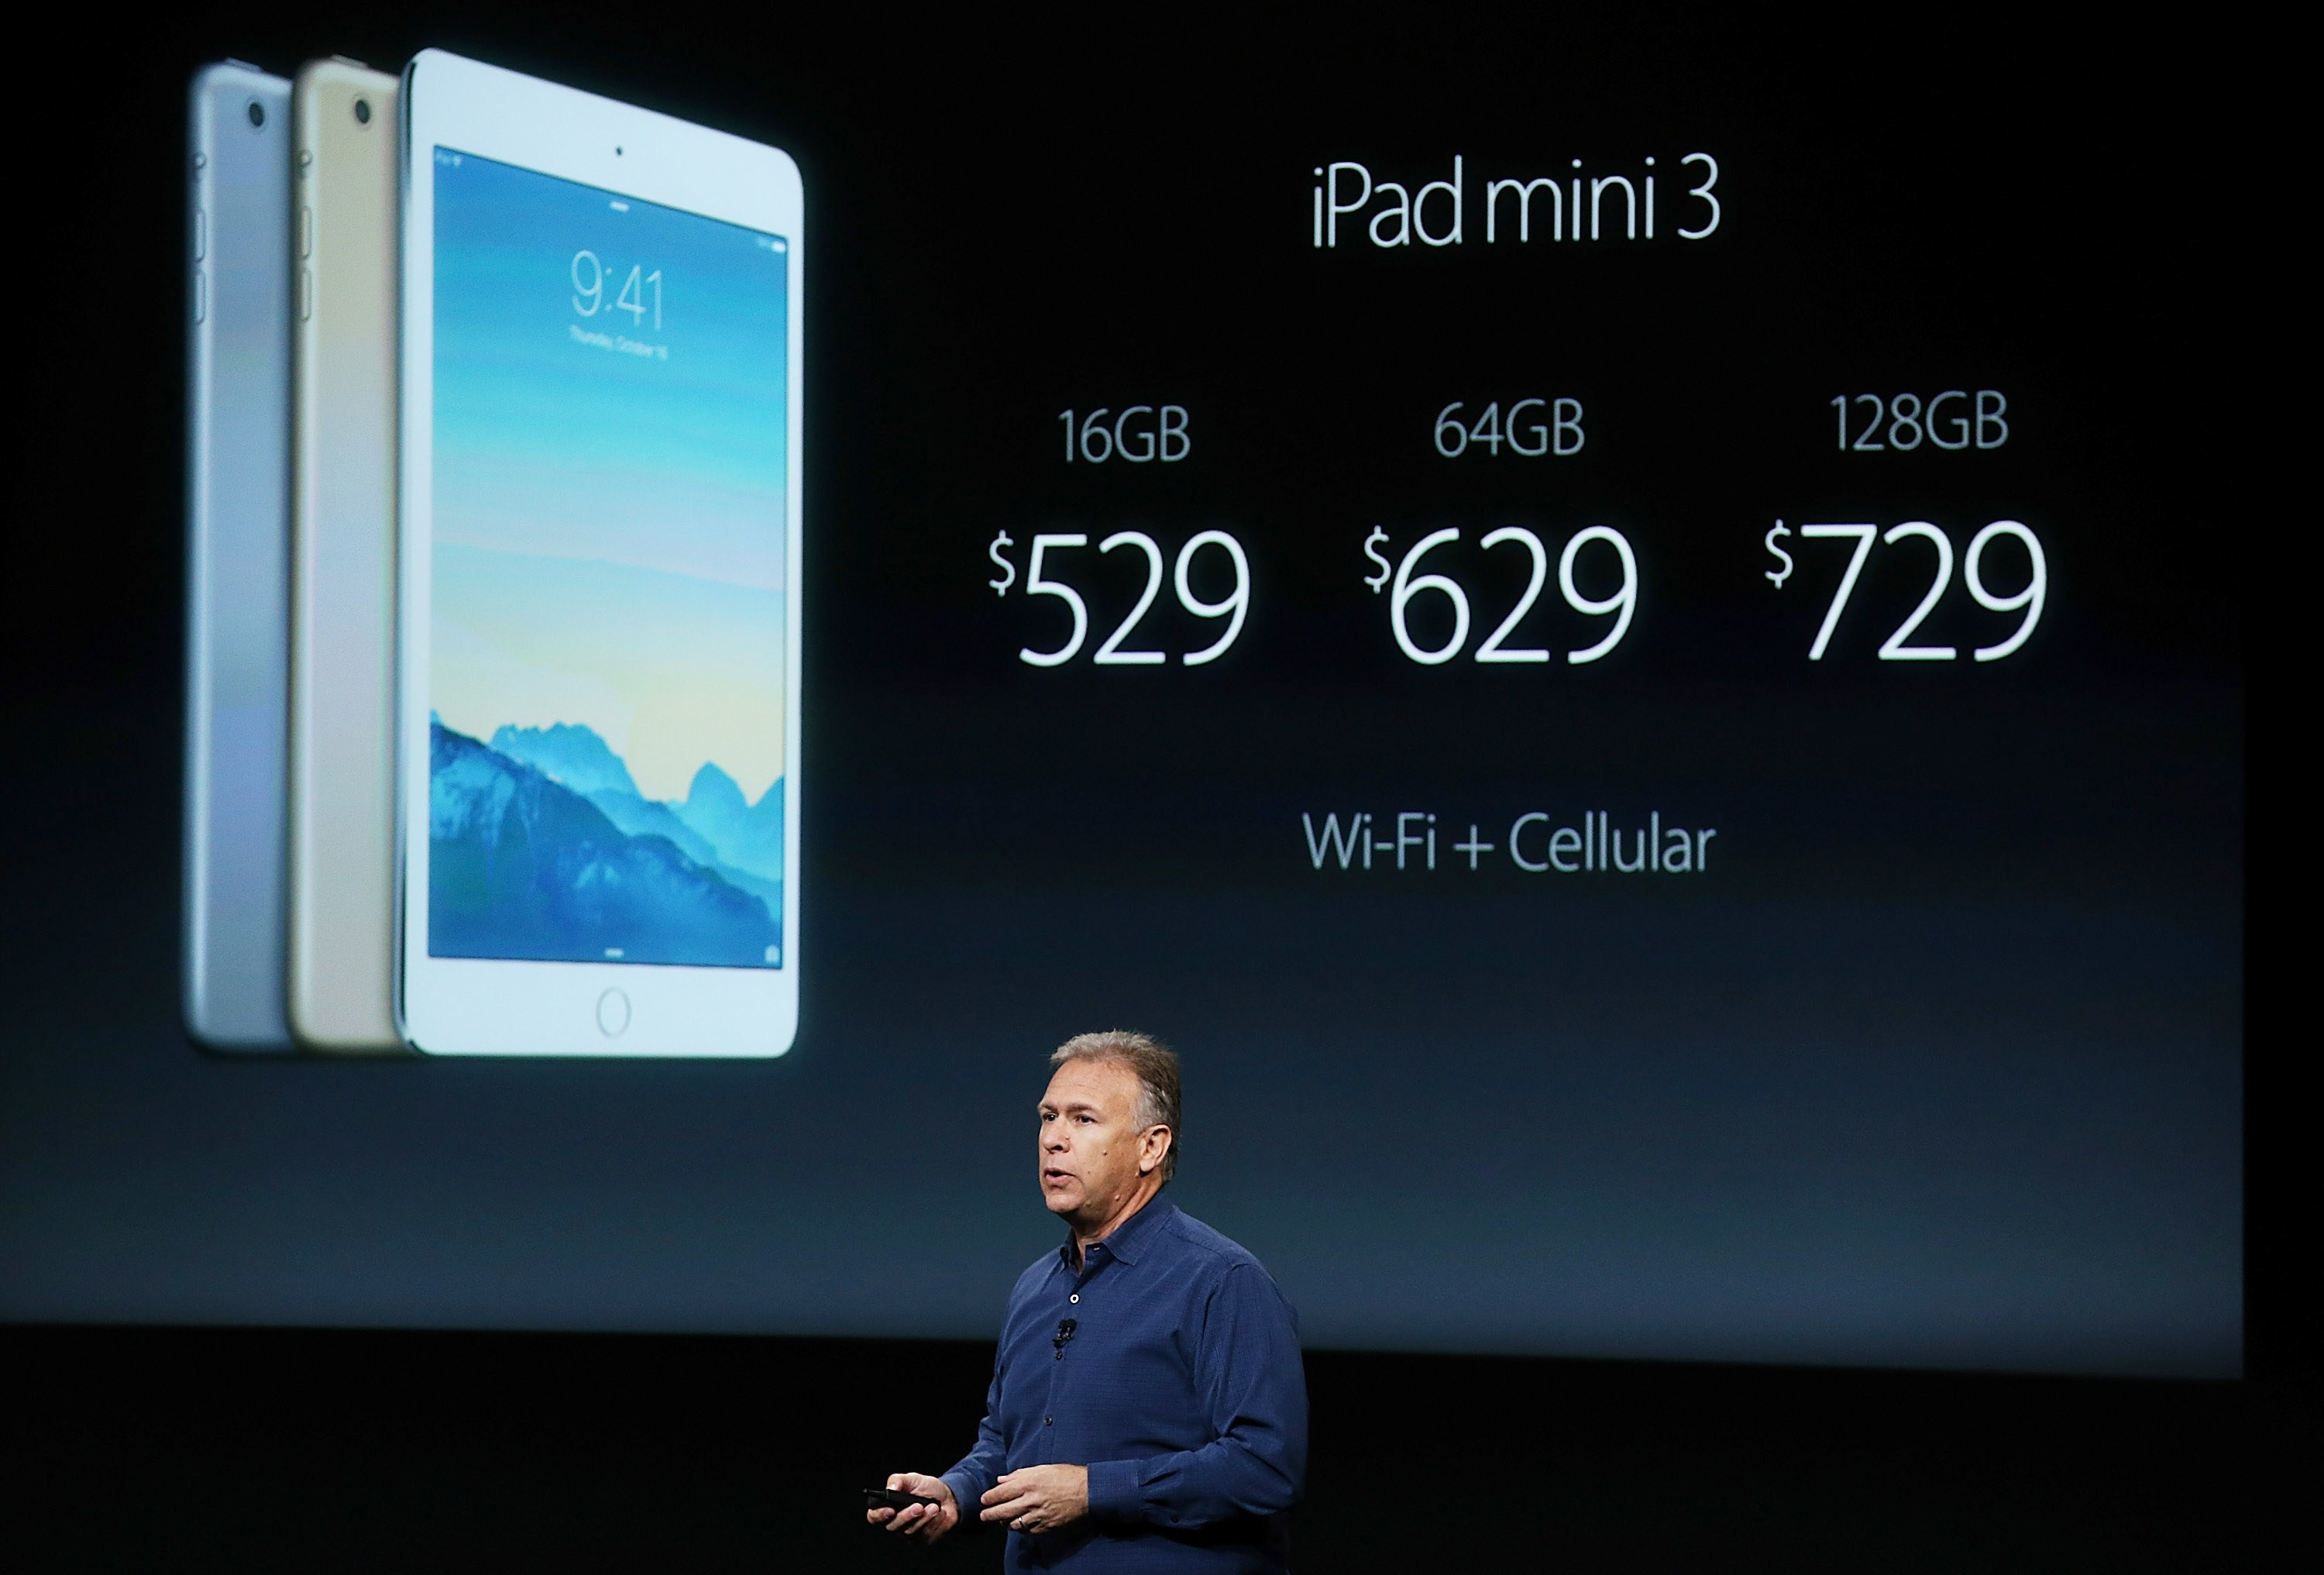 Apple's Senior Vice President of Software Engineering Craig Federighi speaks during an event introducing new iPads at Apple's headquarters October 16, 2014 in Cupertino, California.